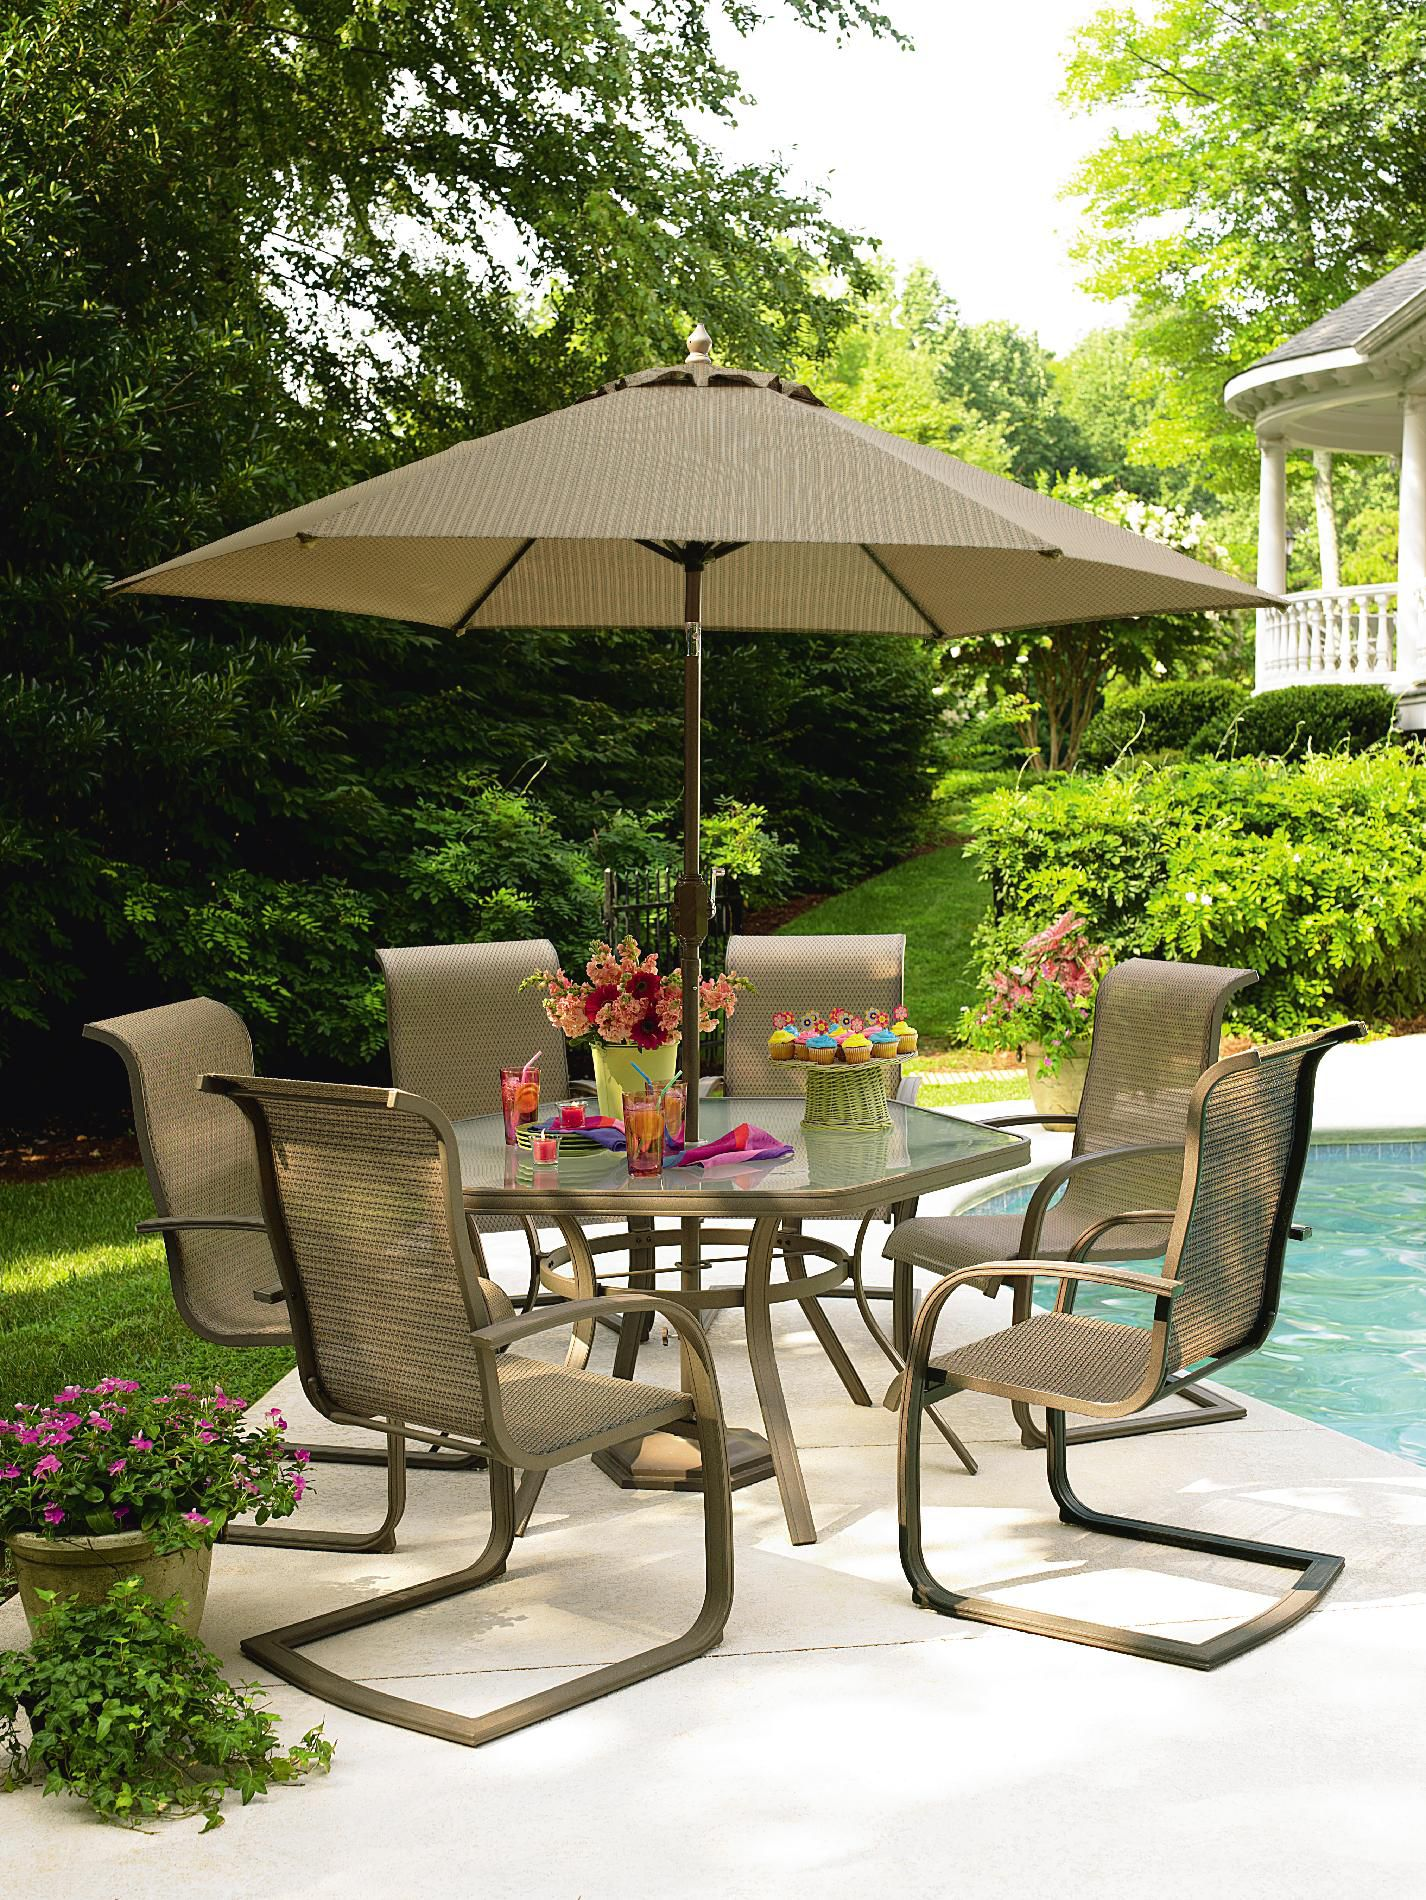 Garden Oasis Grandview 9 Ft. Market Umbrella